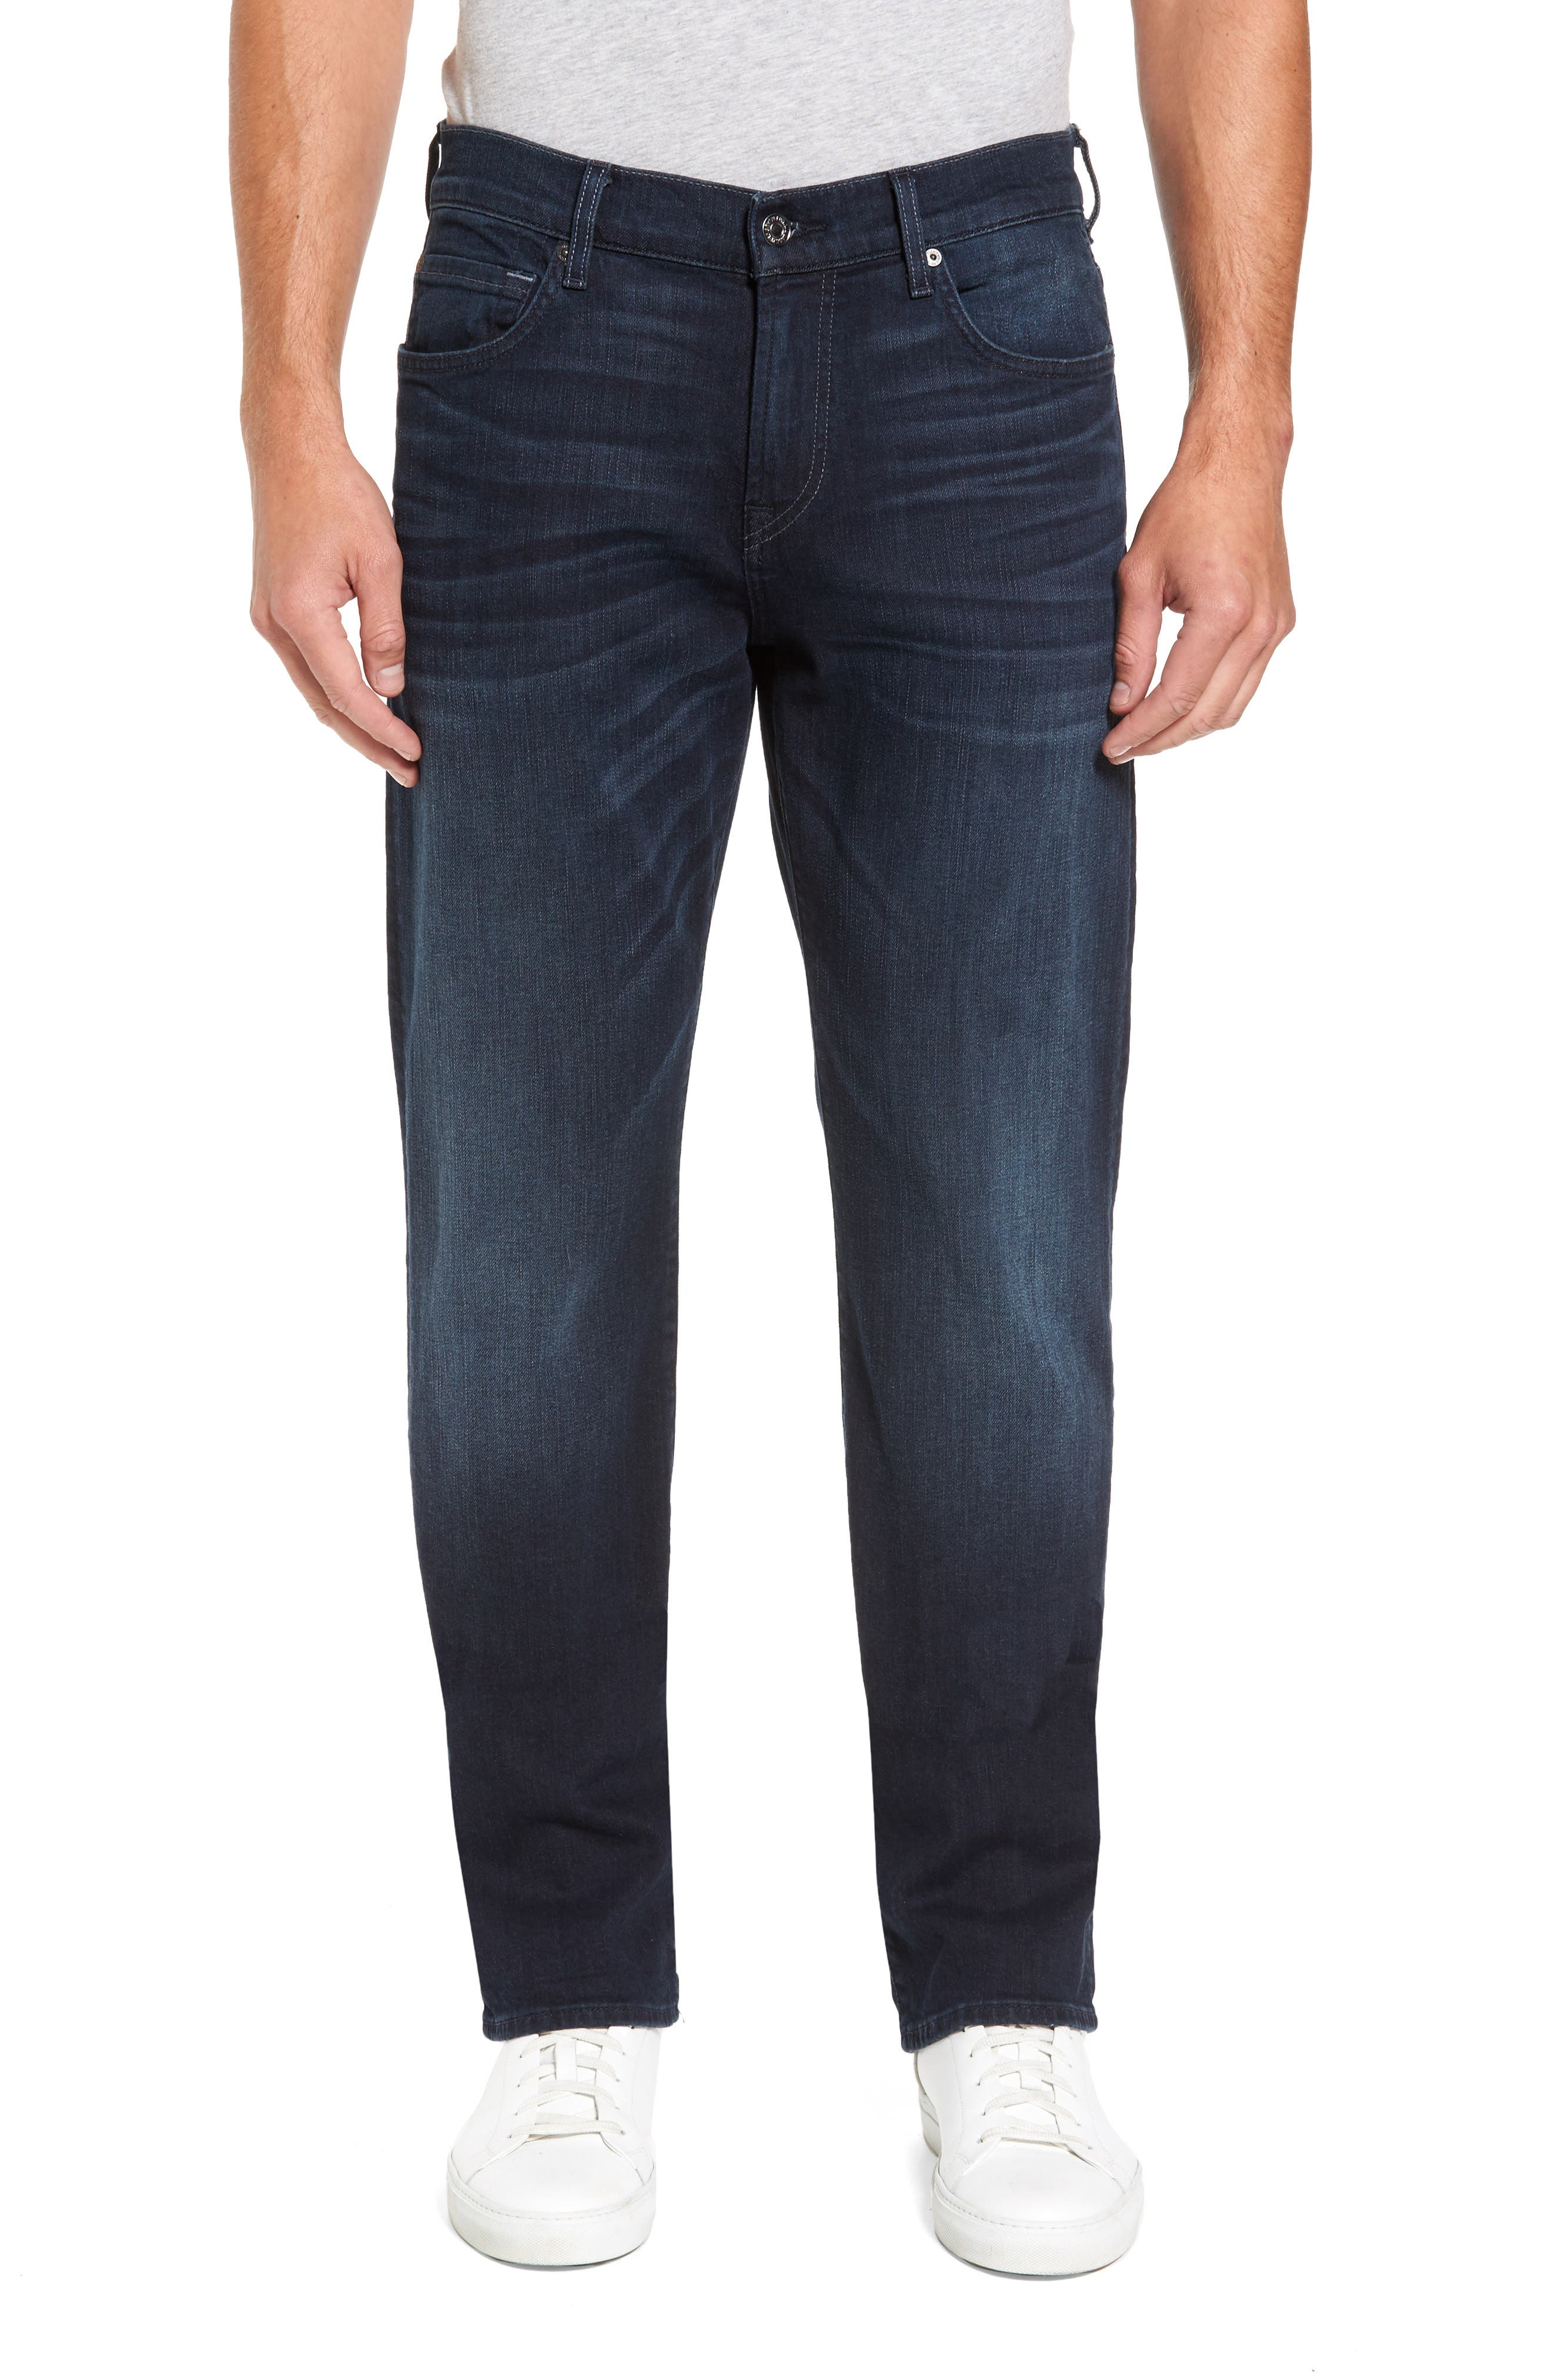 7 FOR ALL MANKIND<SUP>®</SUP> Luxe Performance - Carsen Straight Leg Jeans, Main, color, DARK CURRENT